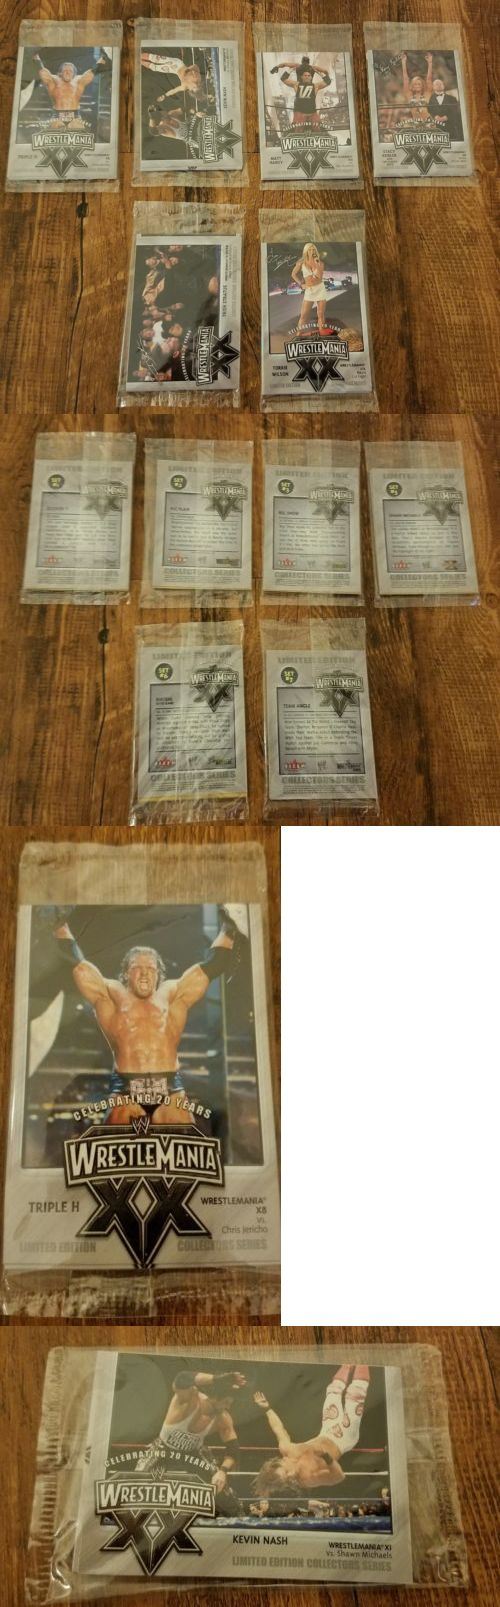 Wrestling Cards 183435: New Rare Unopened Fleer Wwe Wrestlemania Xx Ppv Promotional Cards (6 Of 8 Set) -> BUY IT NOW ONLY: $100 on eBay!